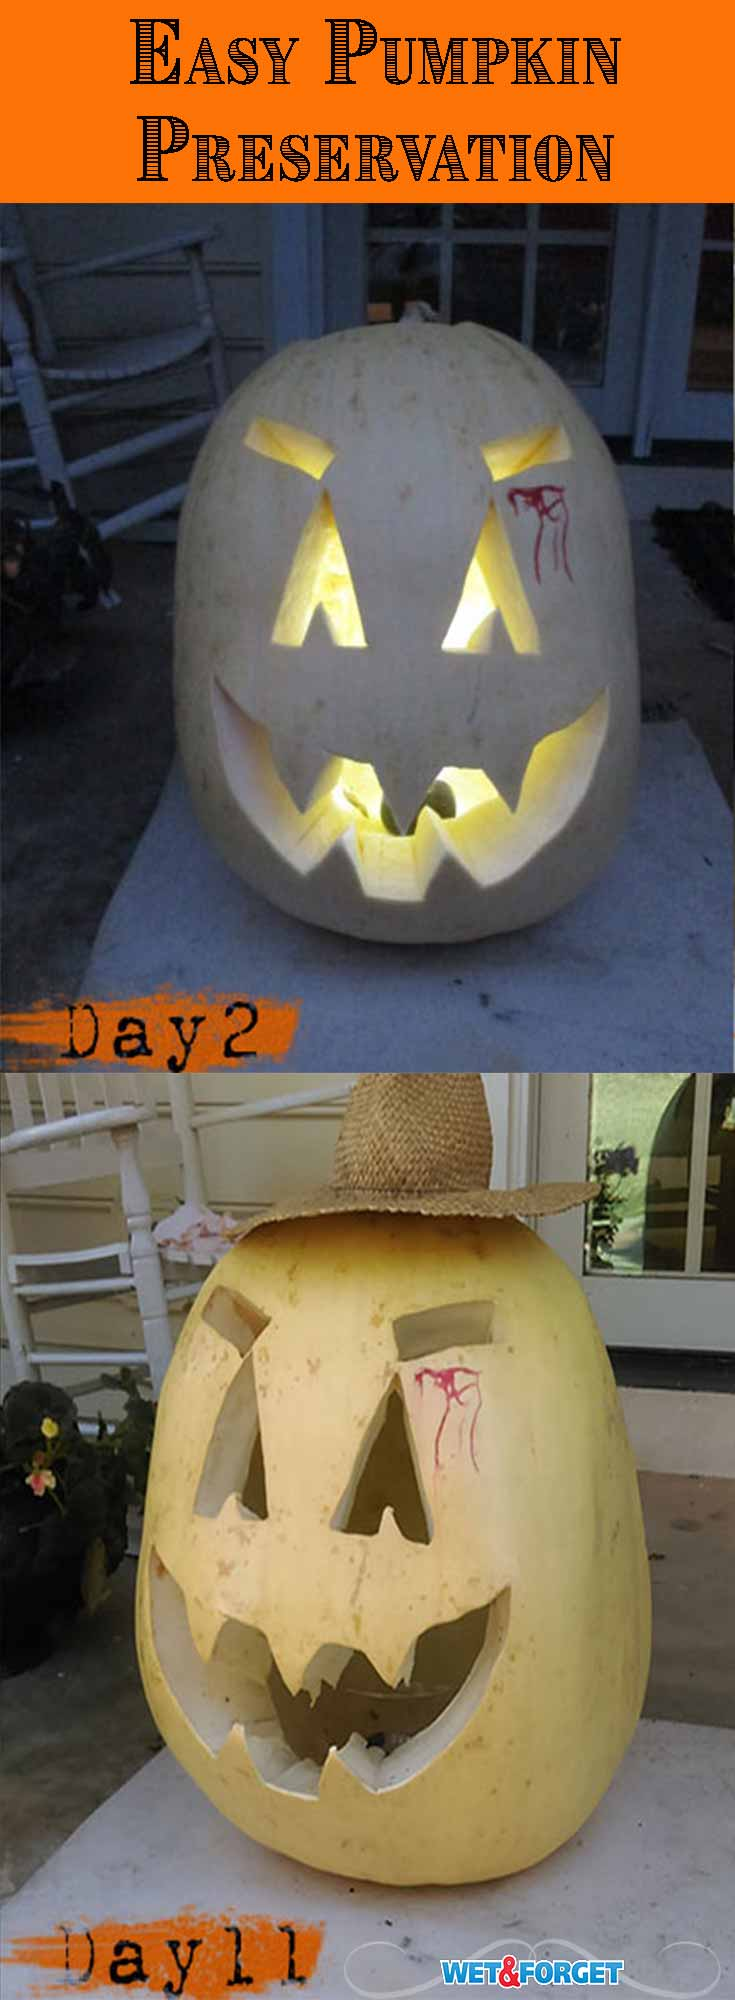 Use this 1 step process to keep your carved pumpkins for up to a month!